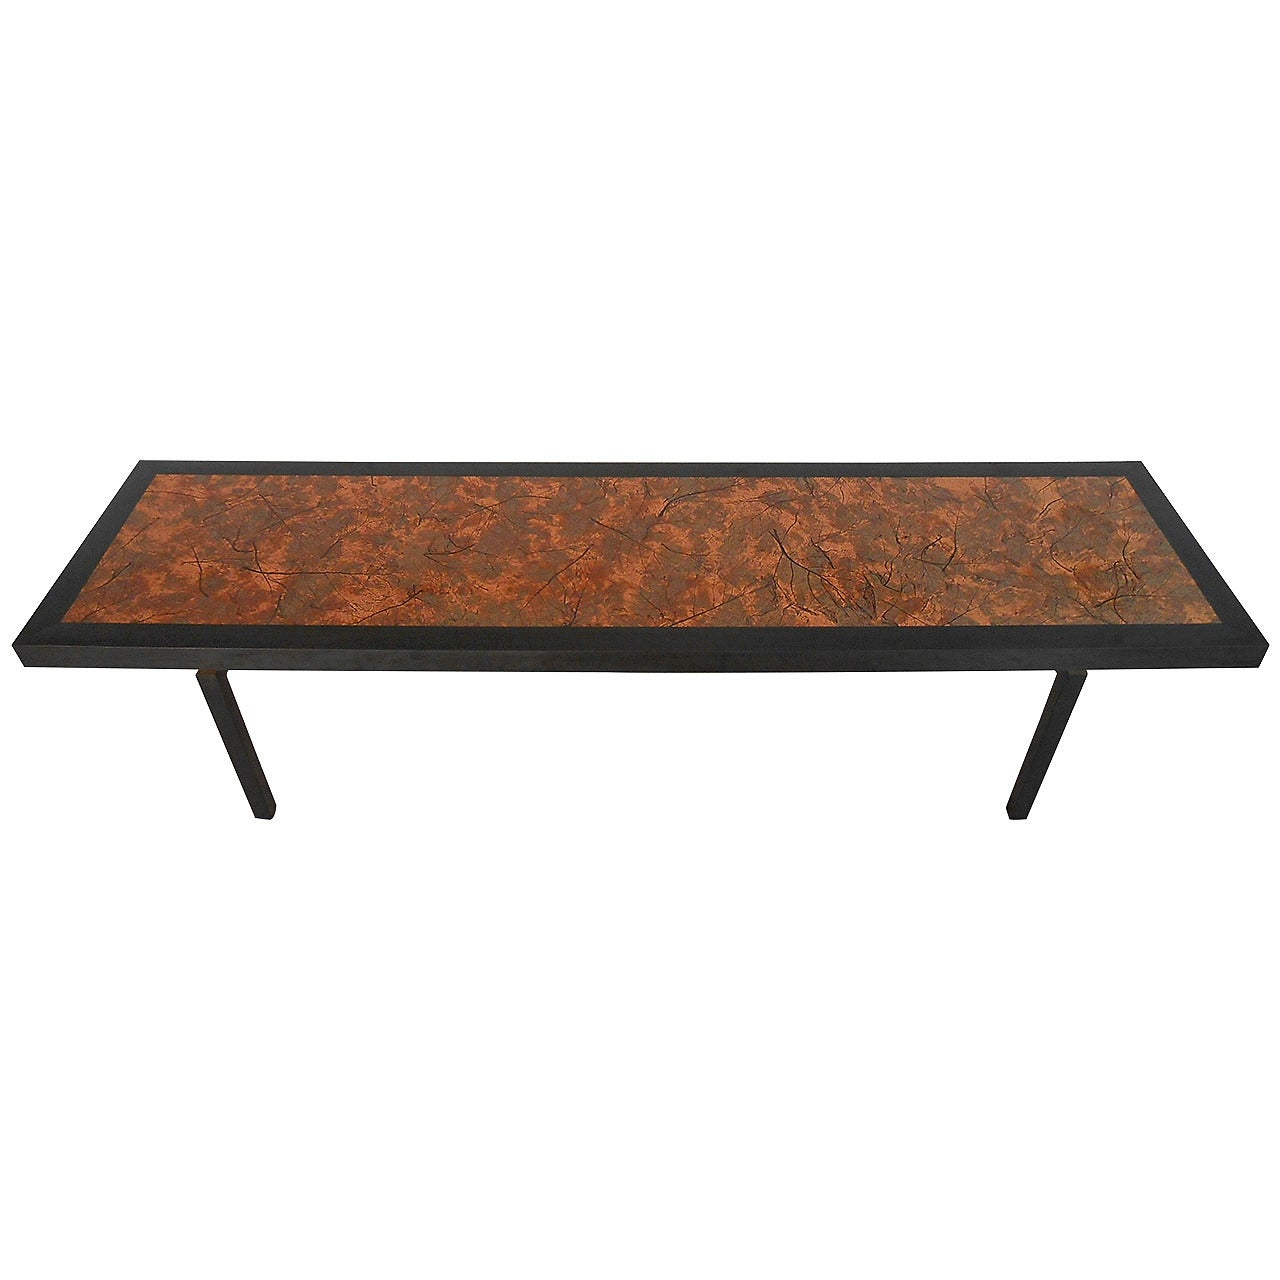 Vintage Modern Coffee Table with Hammered Copper Top